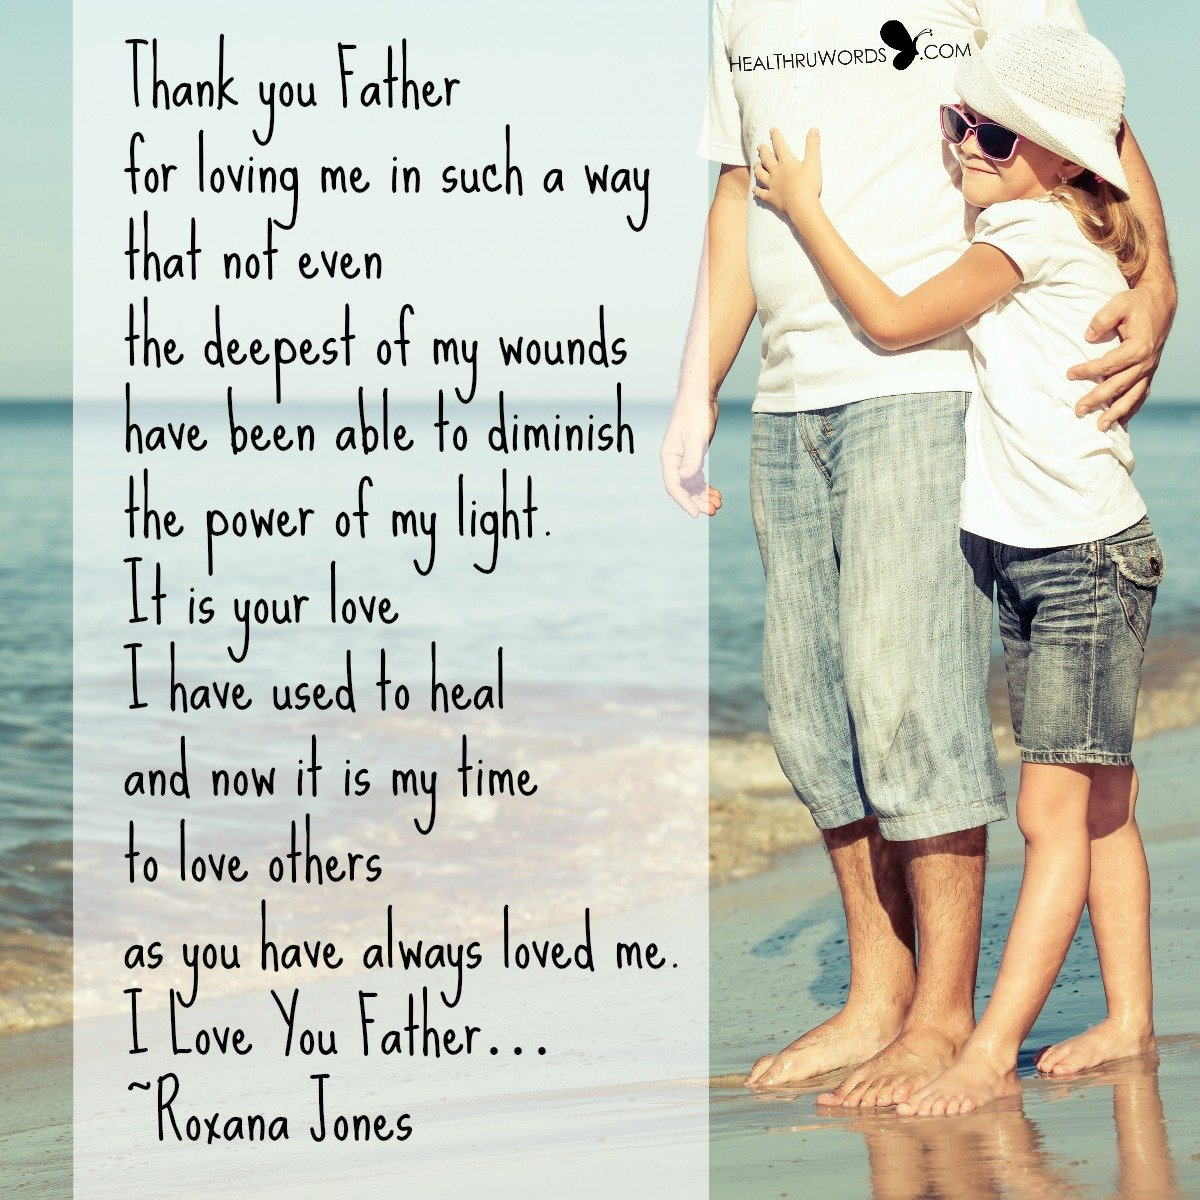 Inspirational Image: Promise to a Father